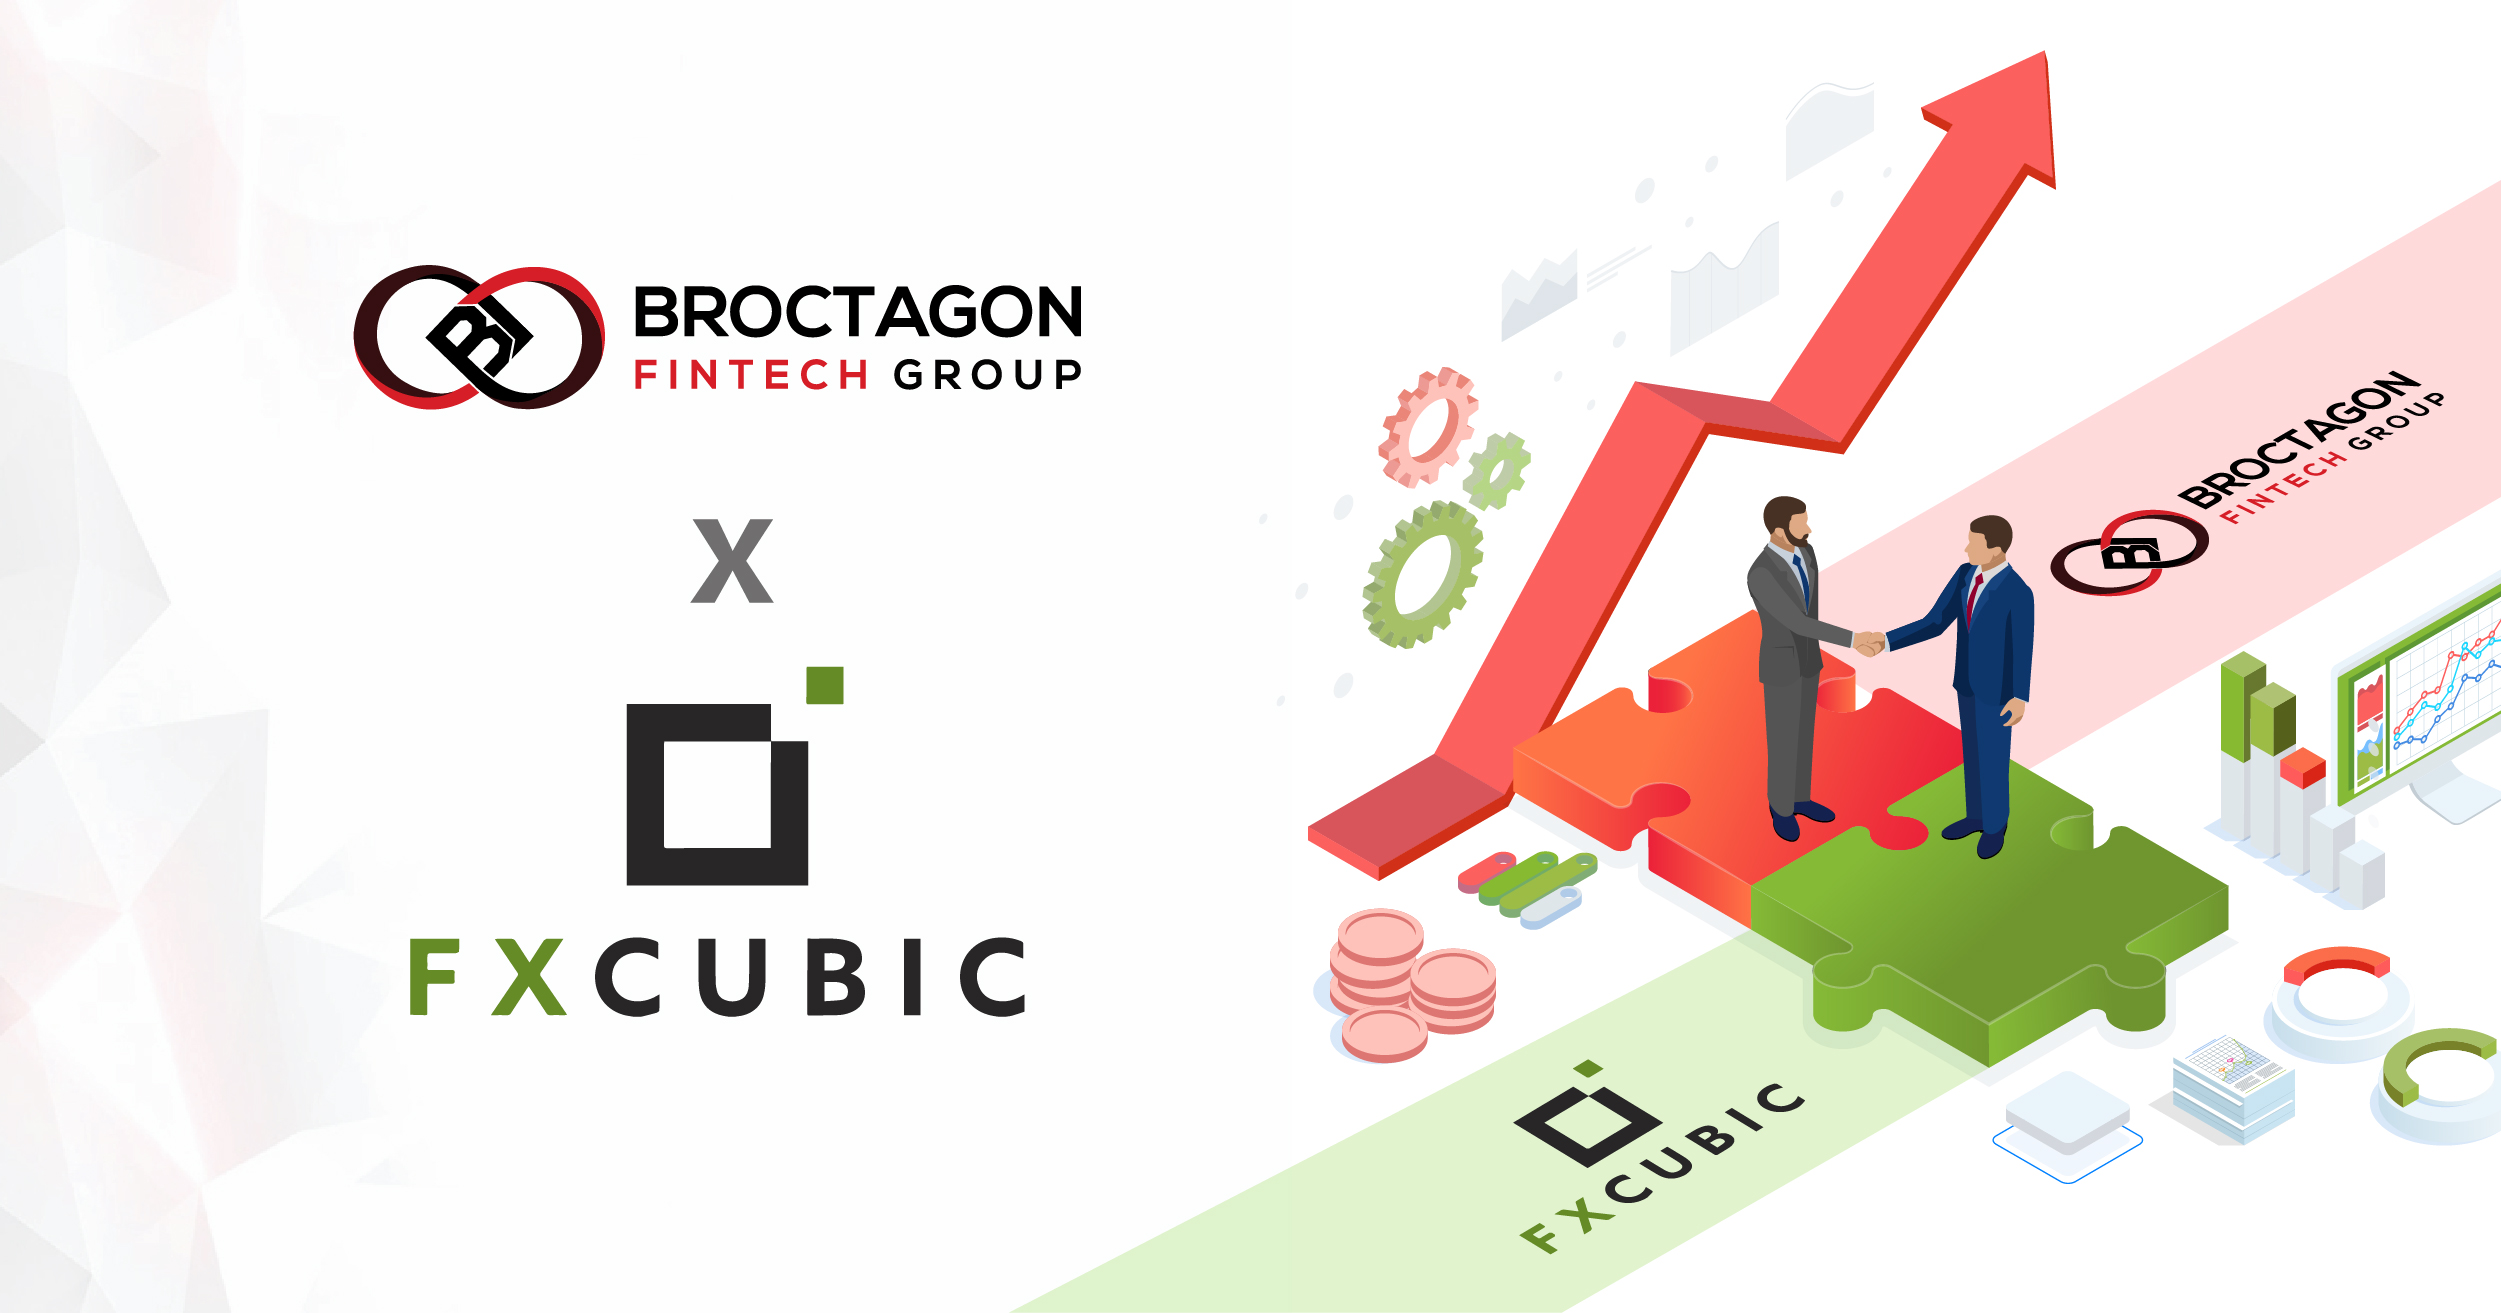 FXCubic Broctagon Partnership